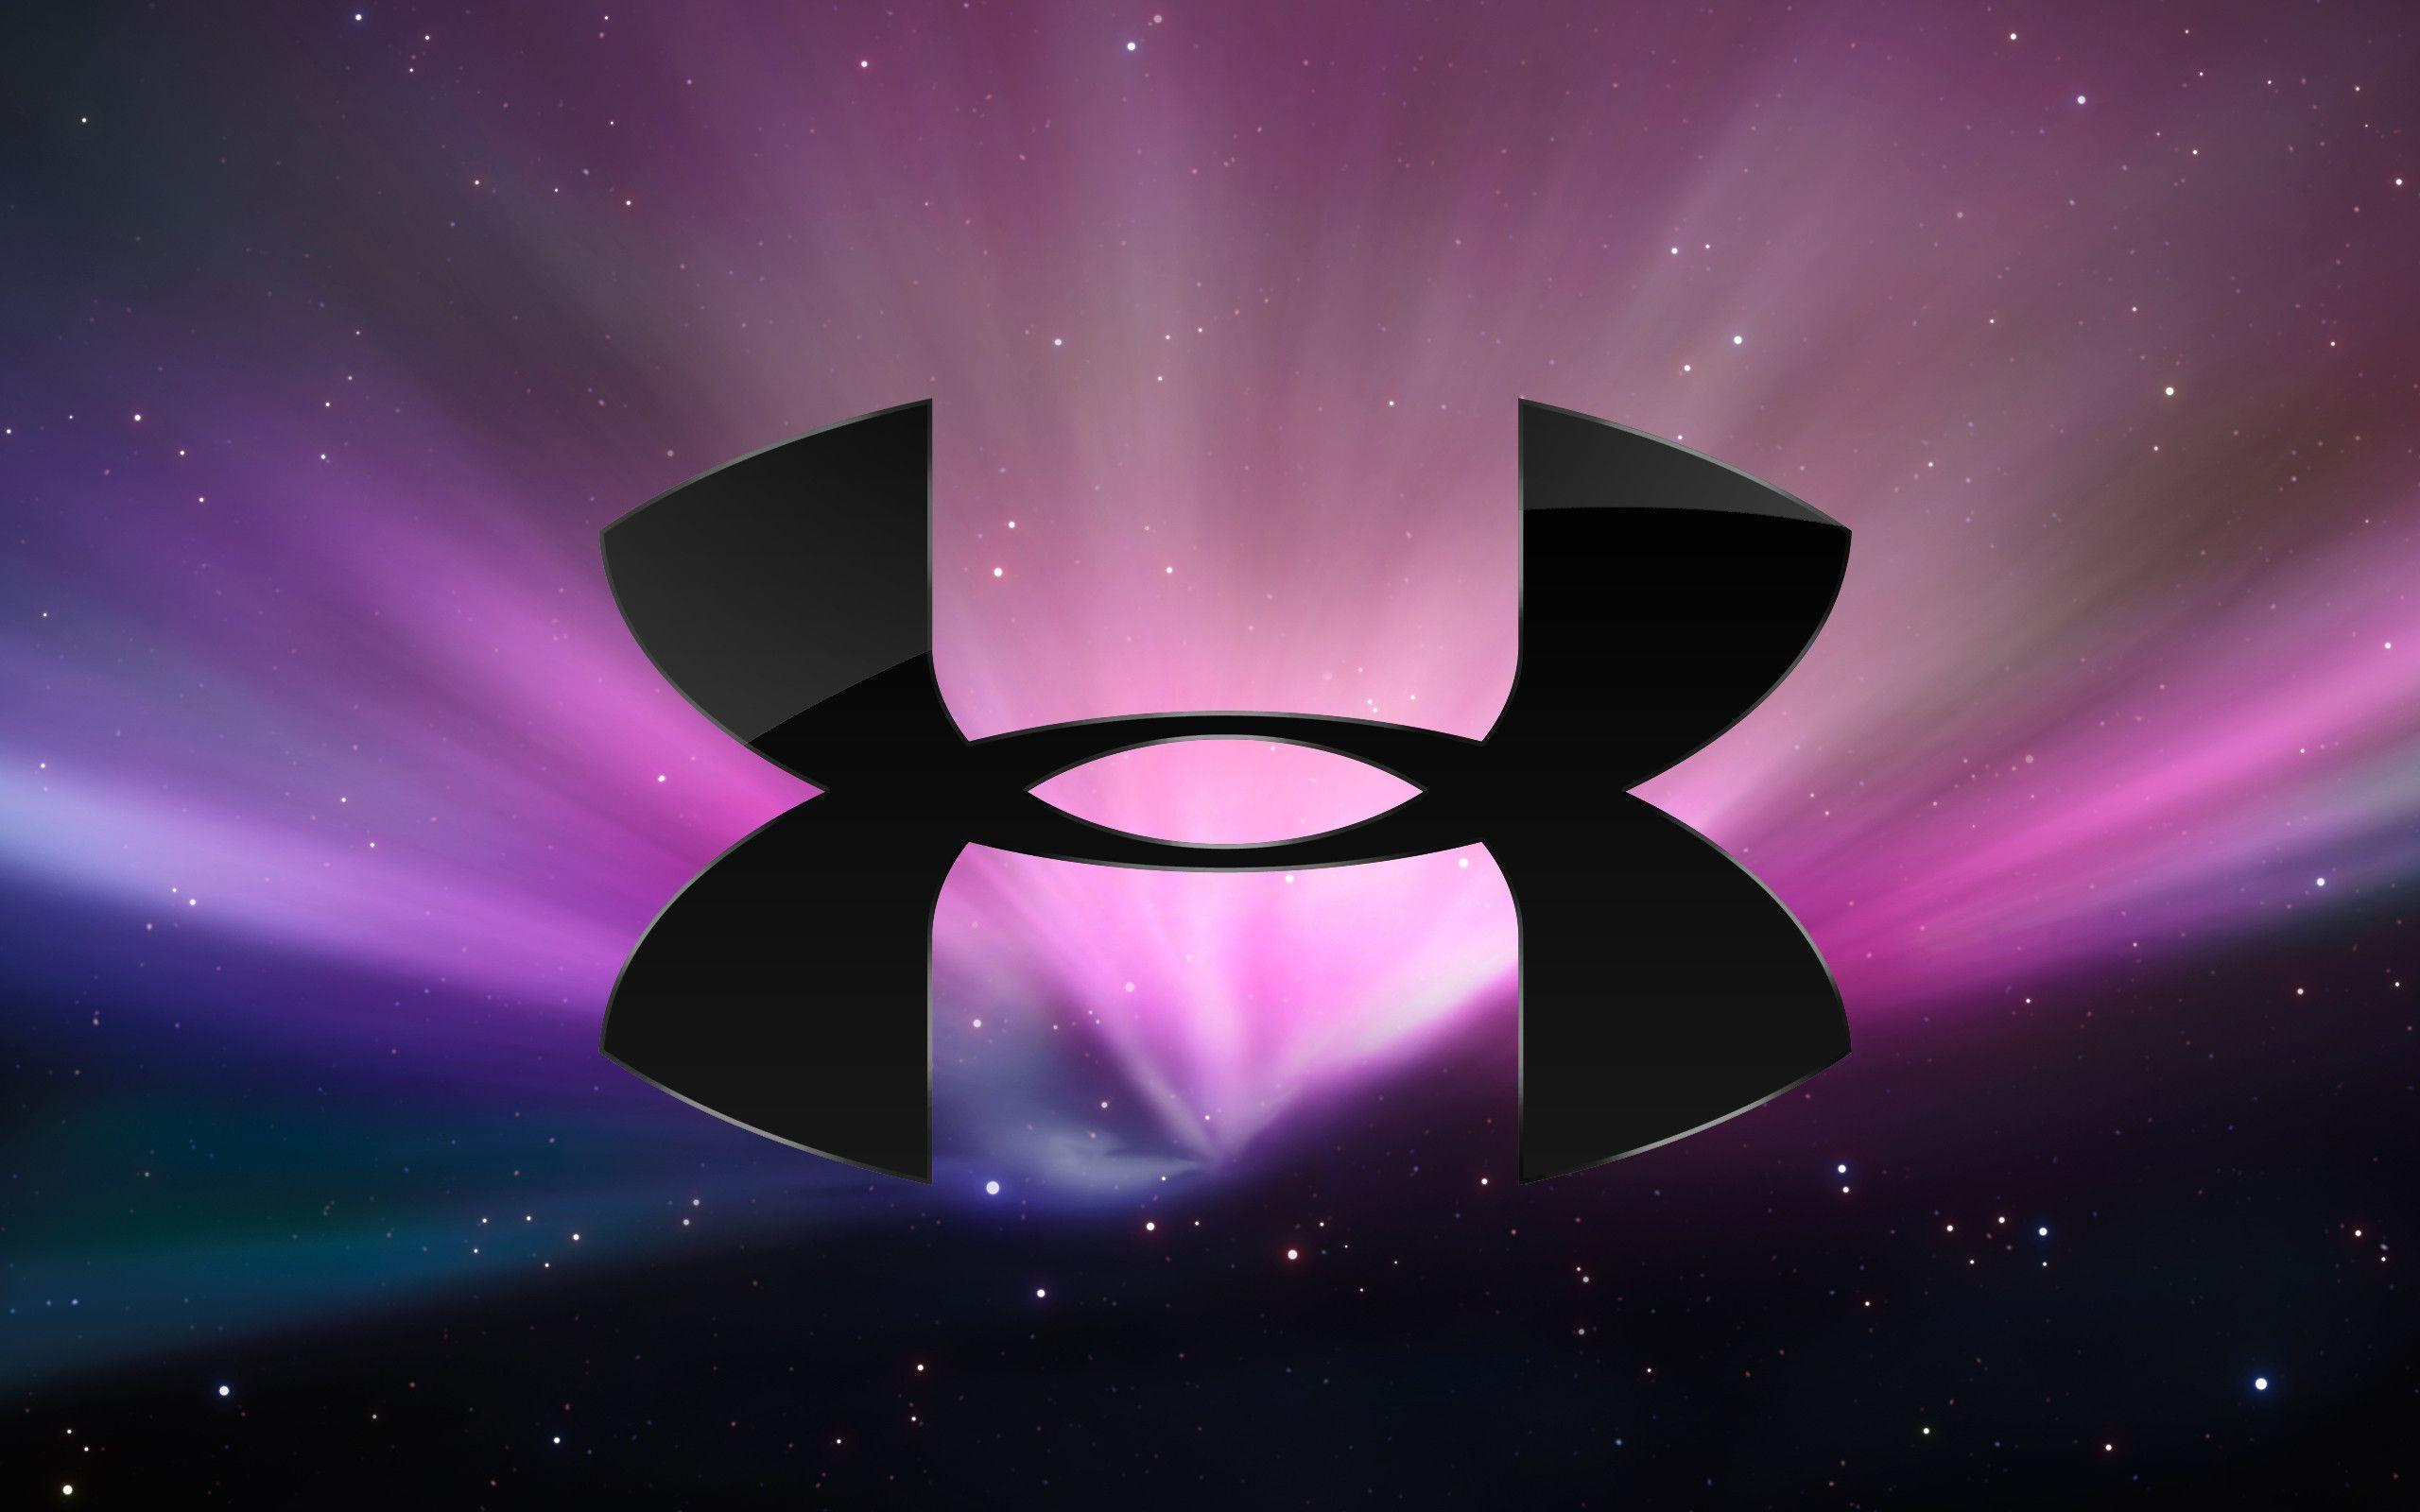 under armour wallpapers for facebook - photo #34